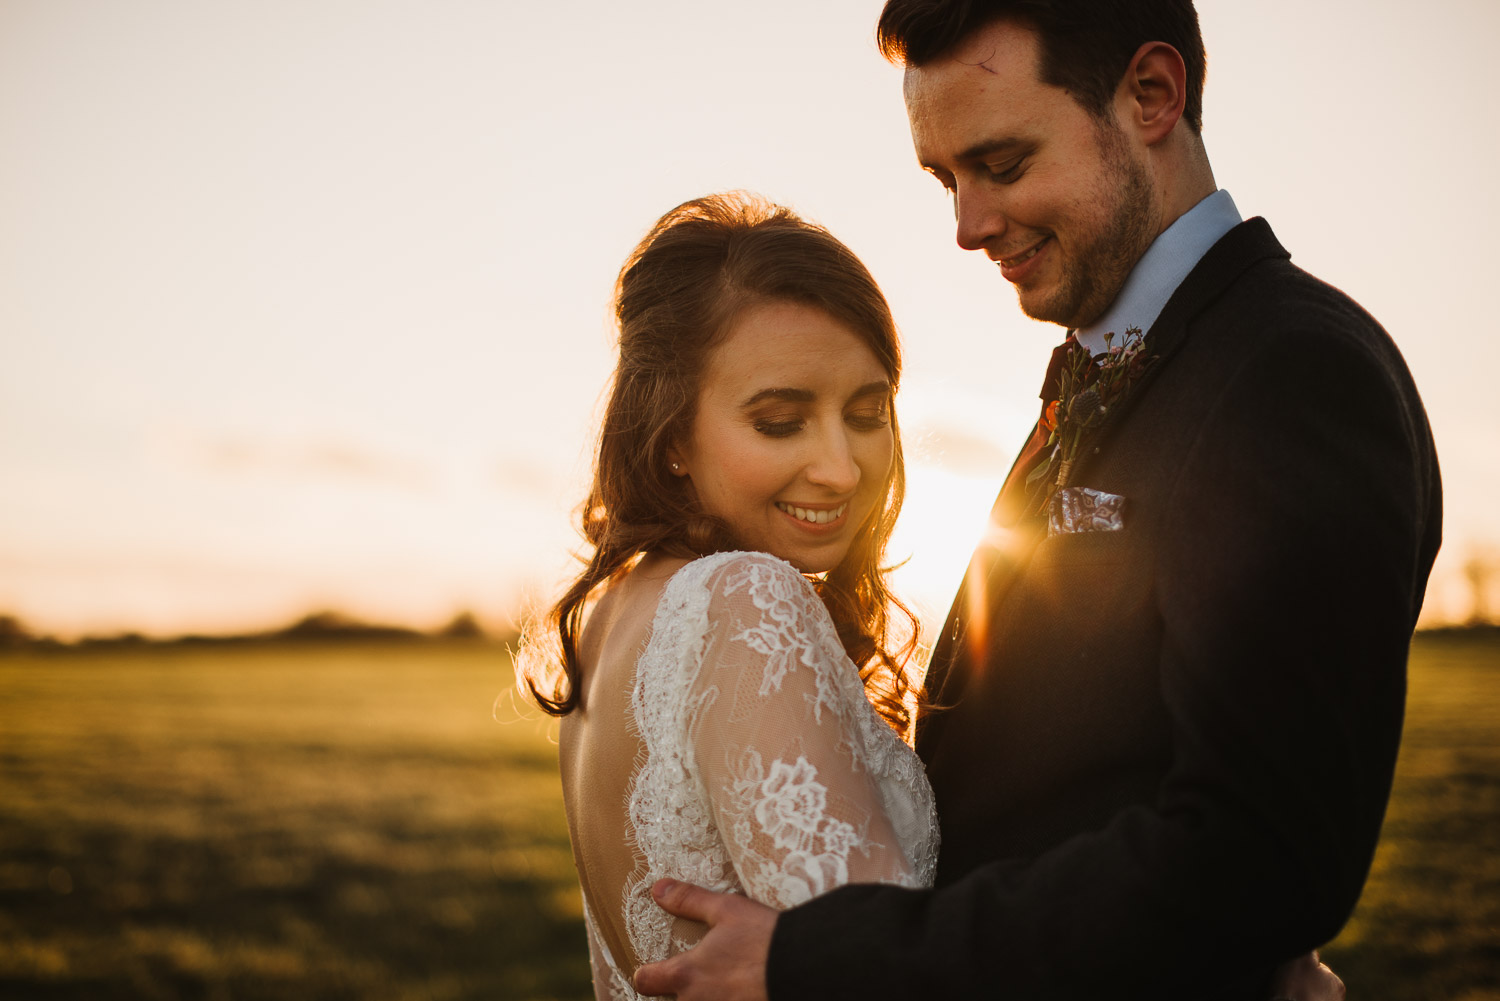 cotswold sunset with bride and groom by creative and alternative london wedding photographer the shannons photography